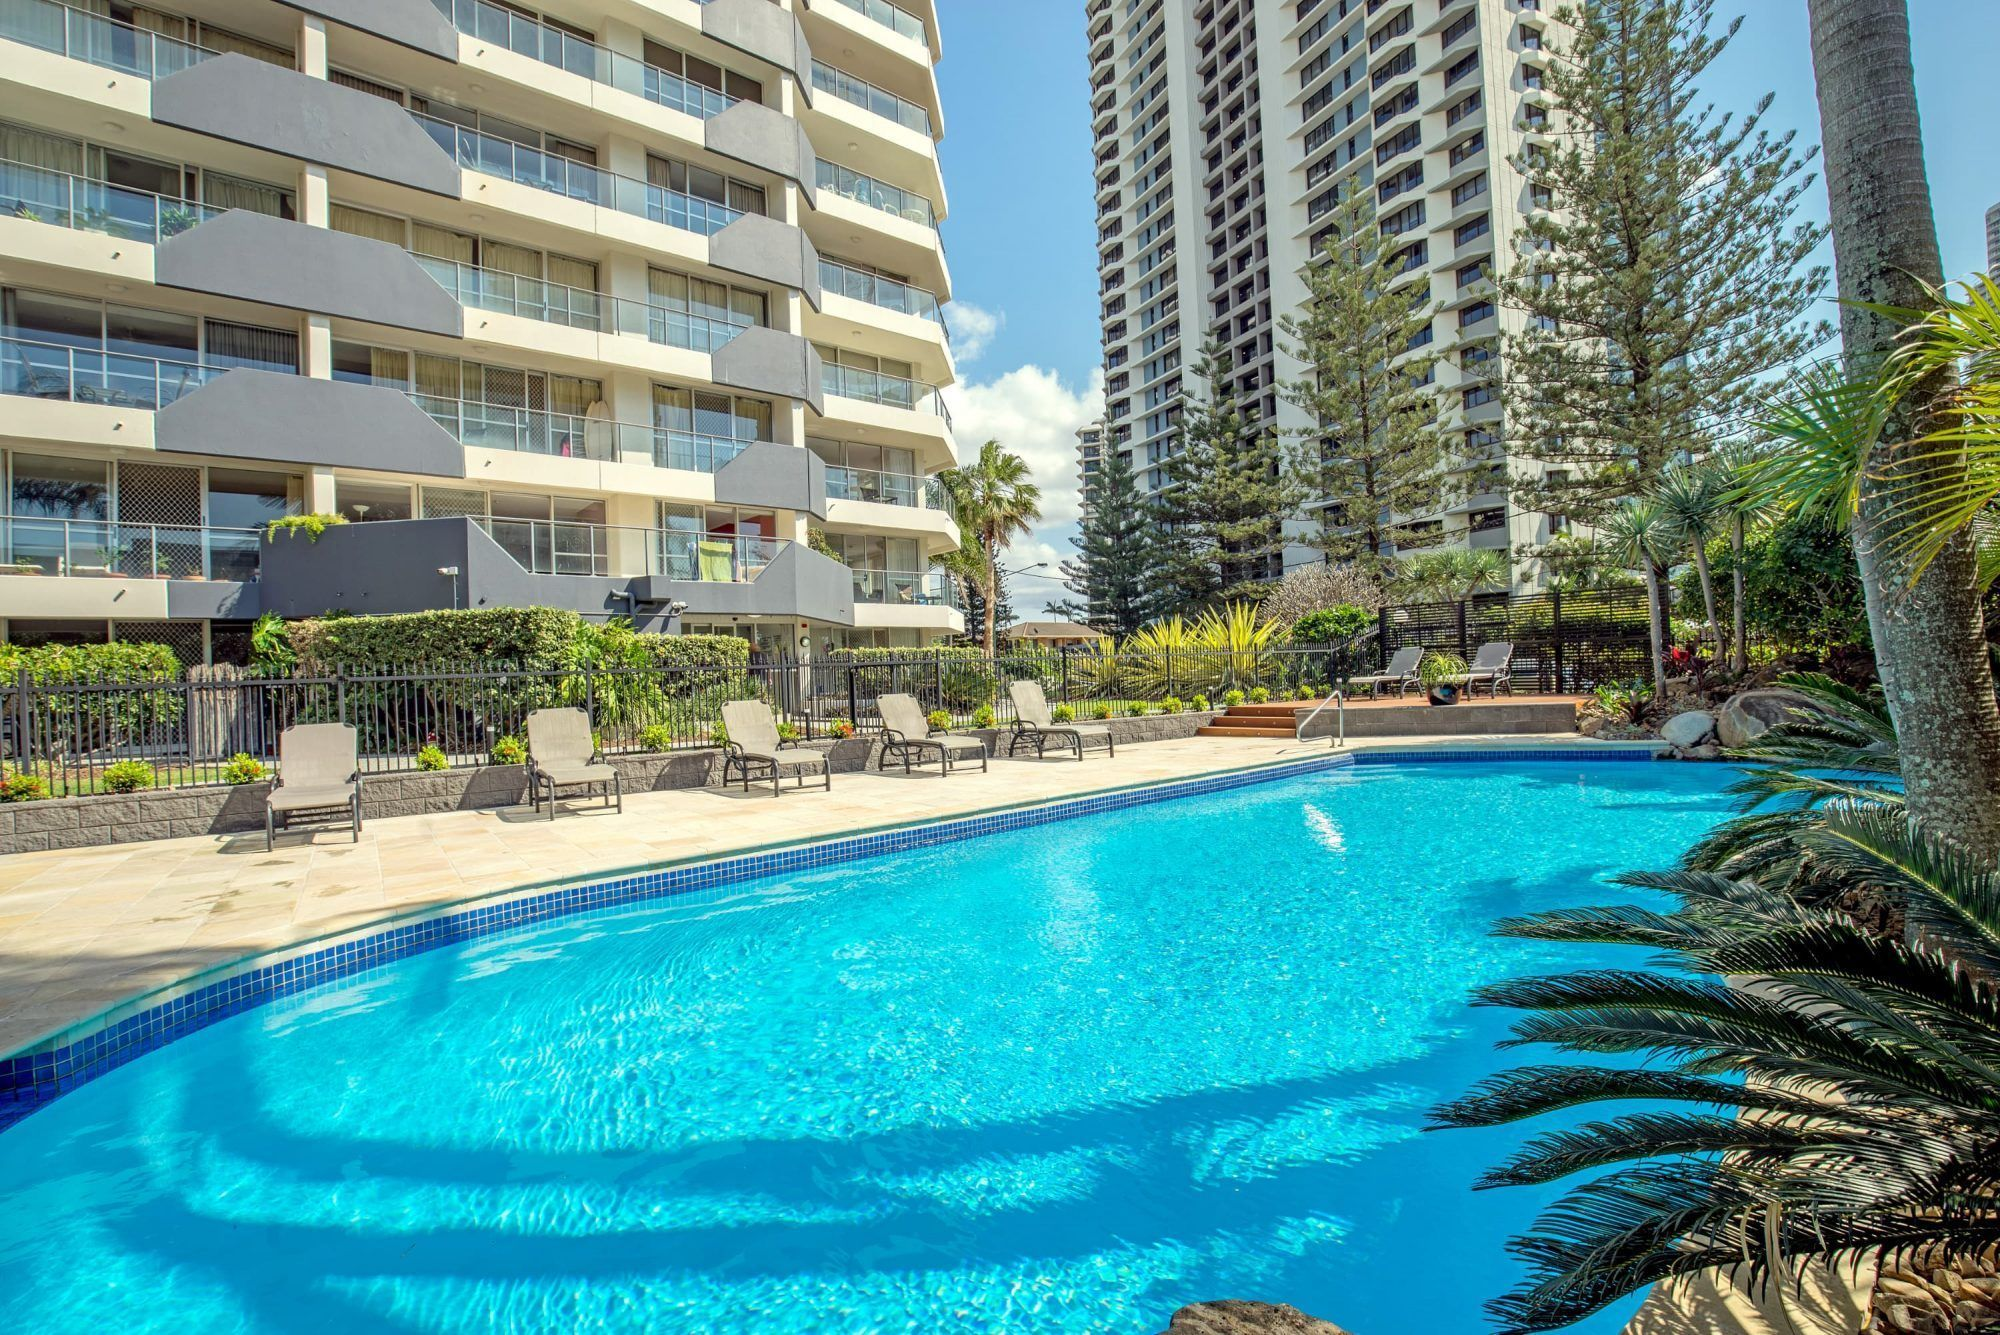 surfers paradise apartments gallery baronnet apartments. Black Bedroom Furniture Sets. Home Design Ideas